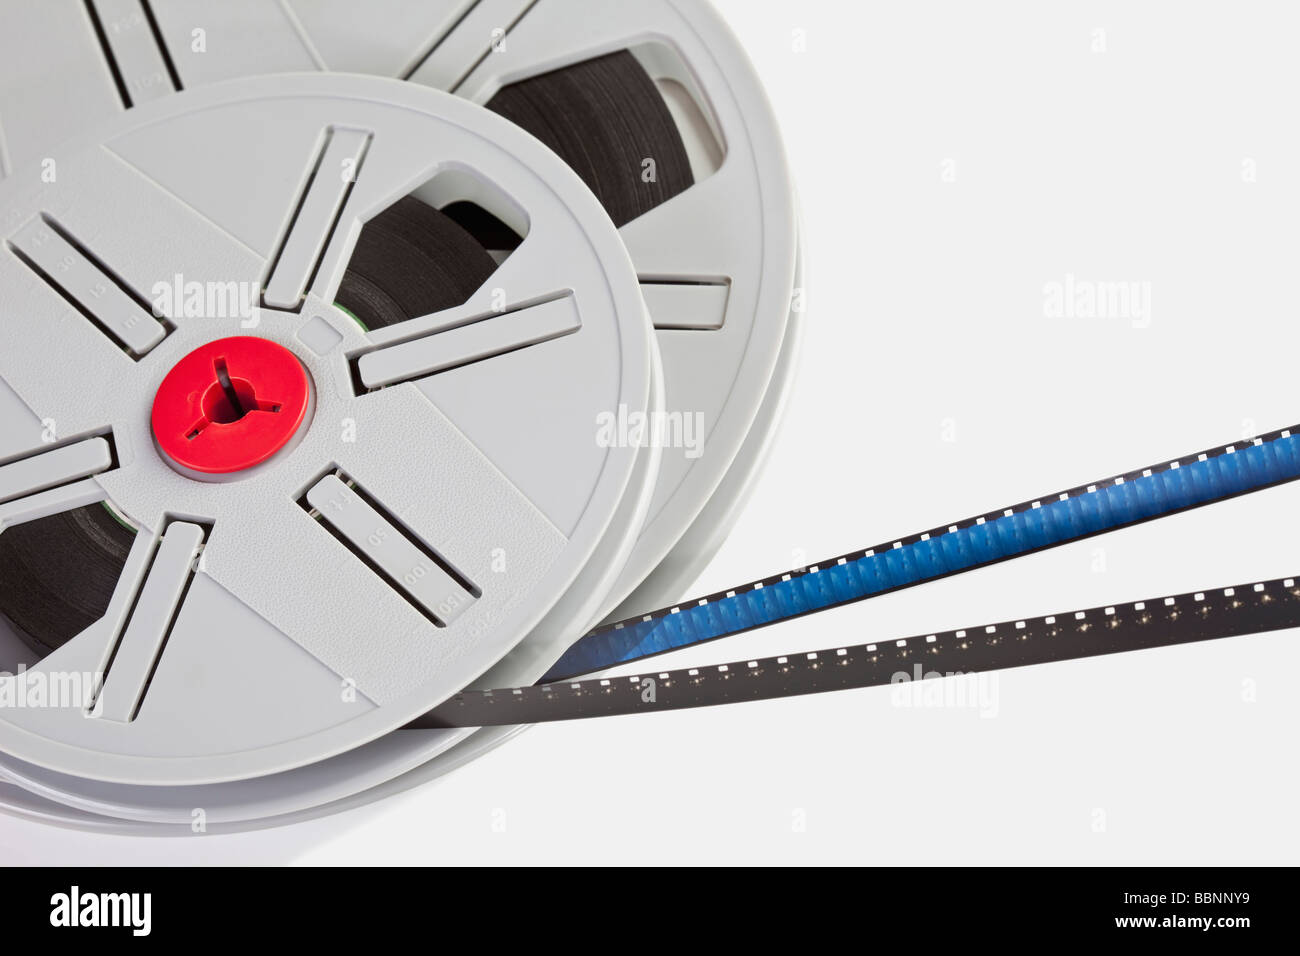 Film reels, elevated view - Stock Image